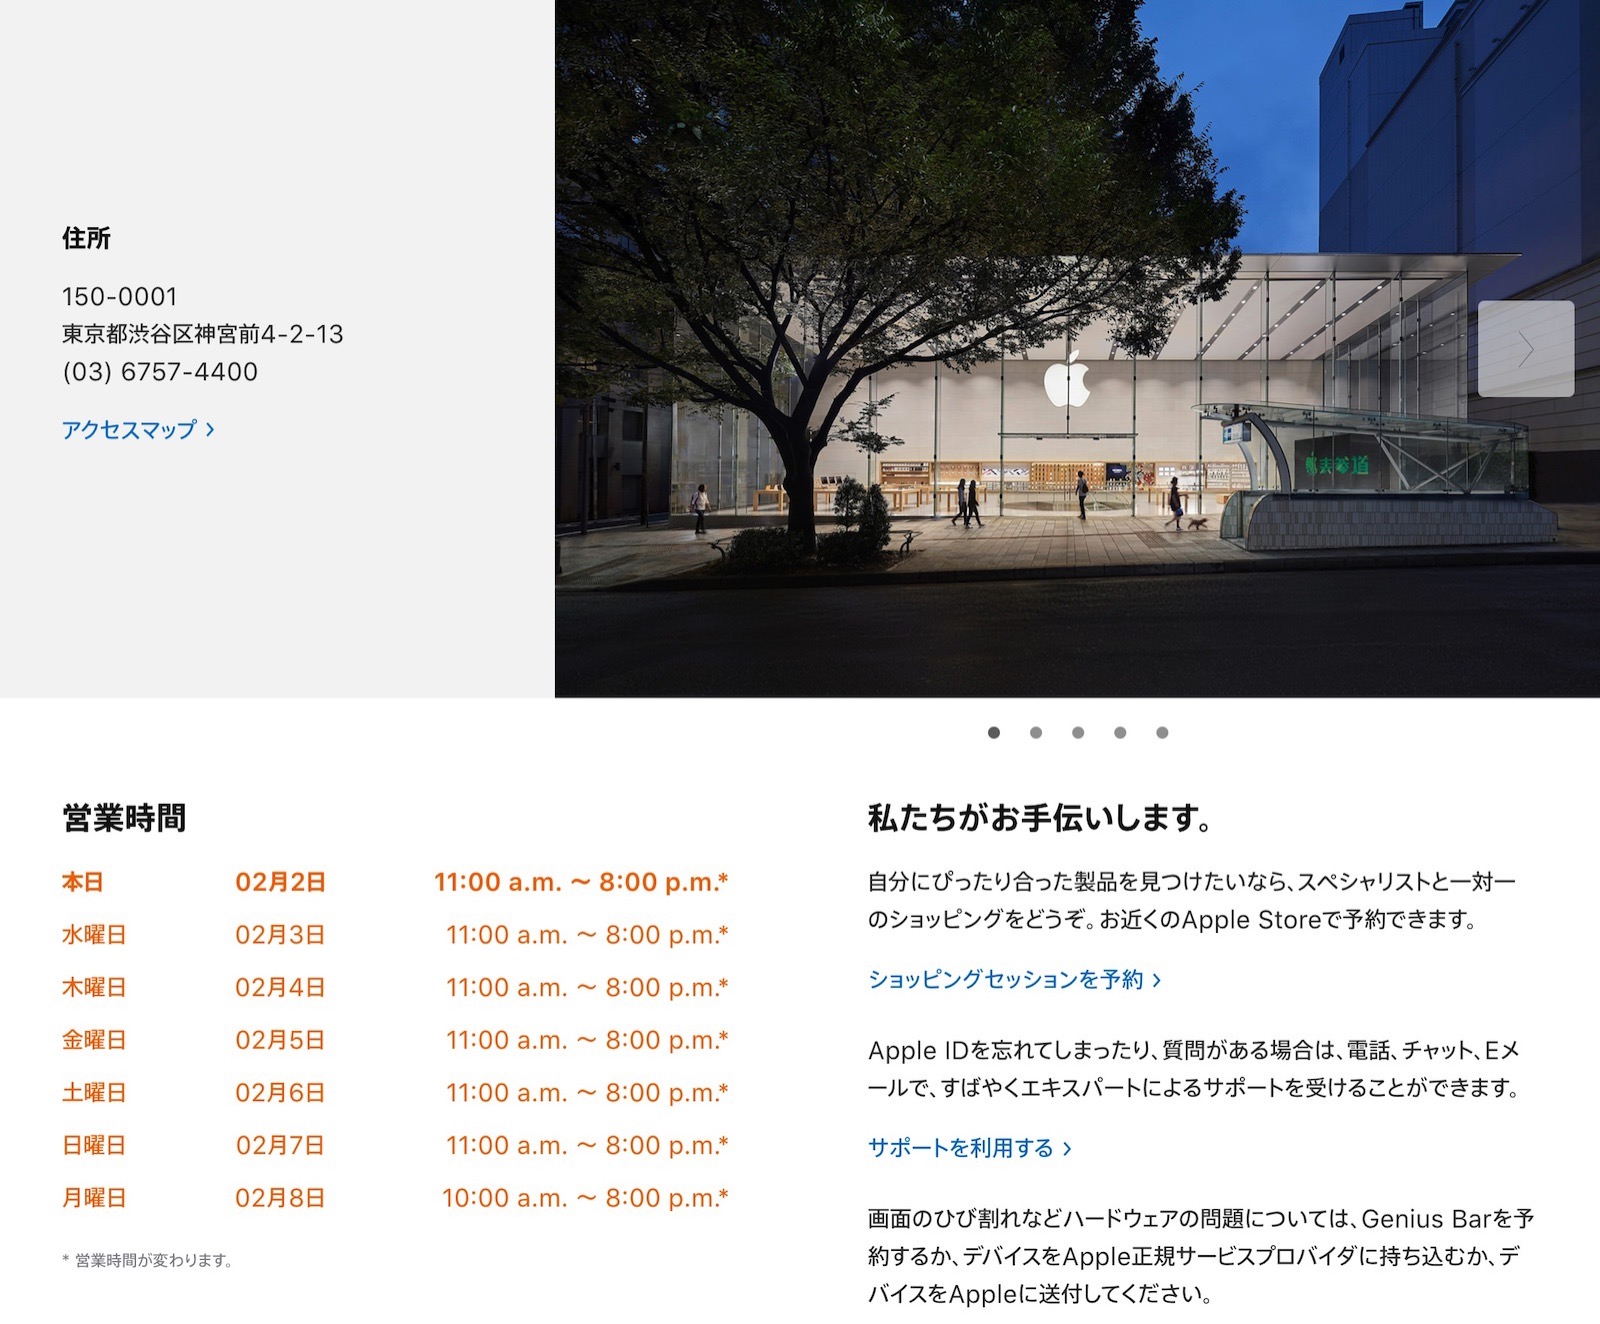 Apple Store open time changes 2